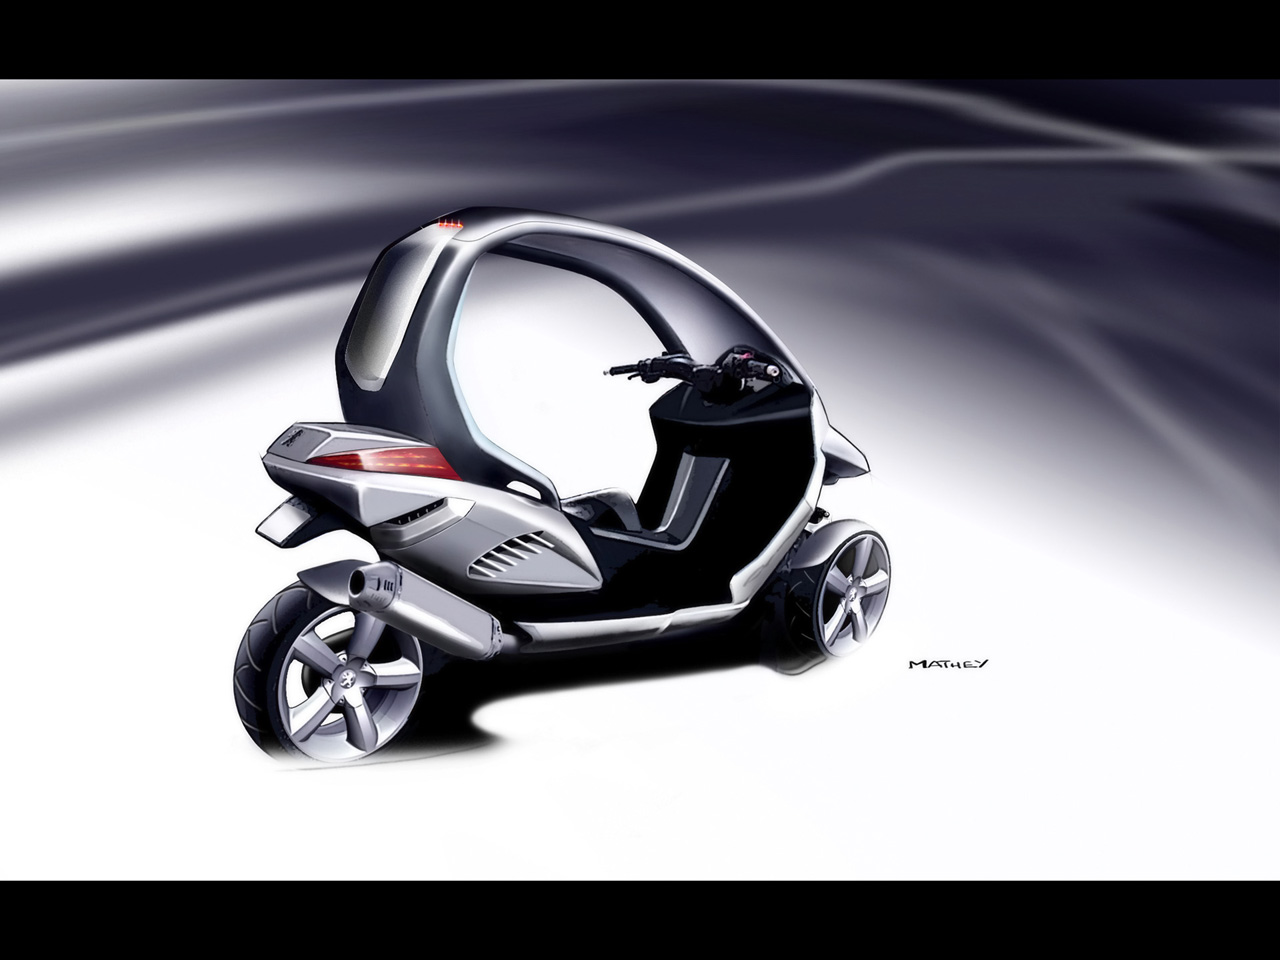 2017 Peugeot HYmotion3 Compressor Concept photo - 3